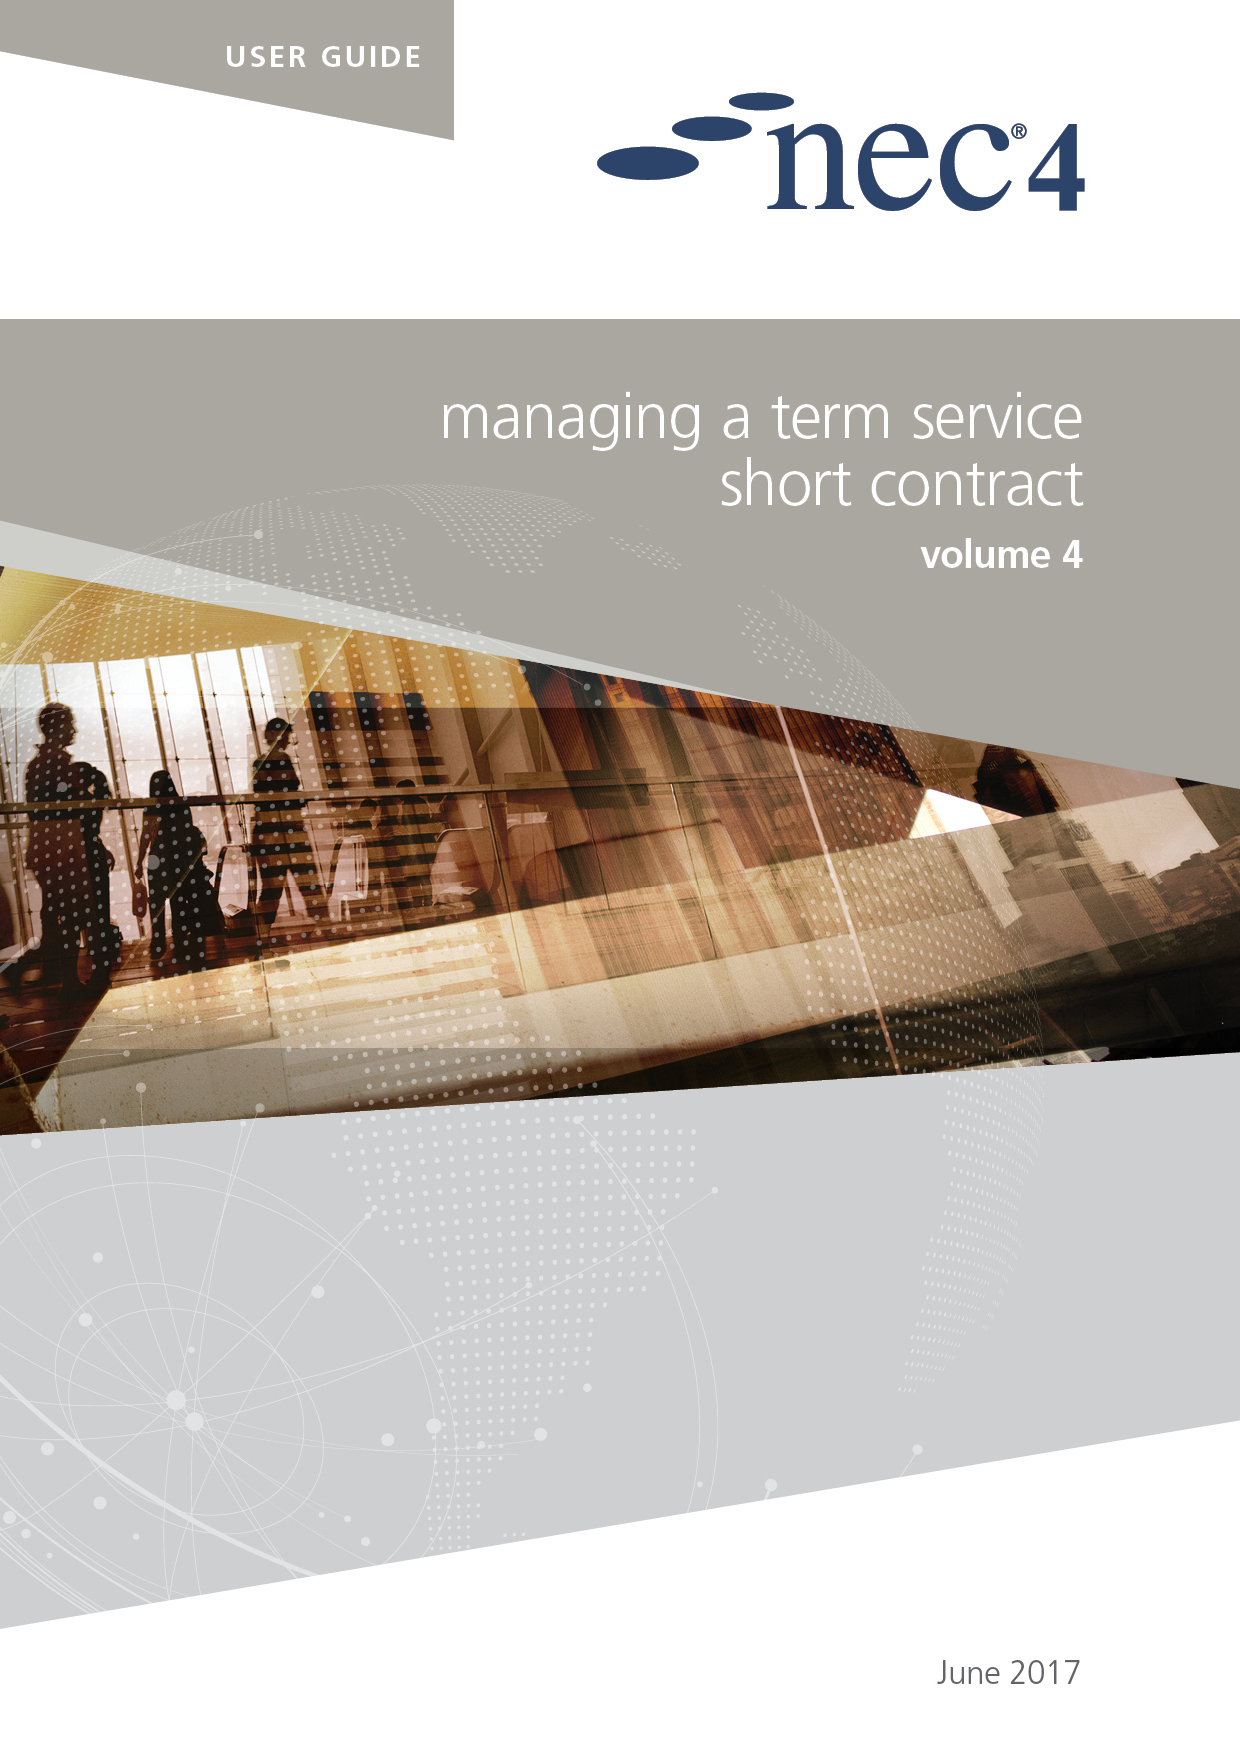 NEC4: Managing a Term Service Short Contract